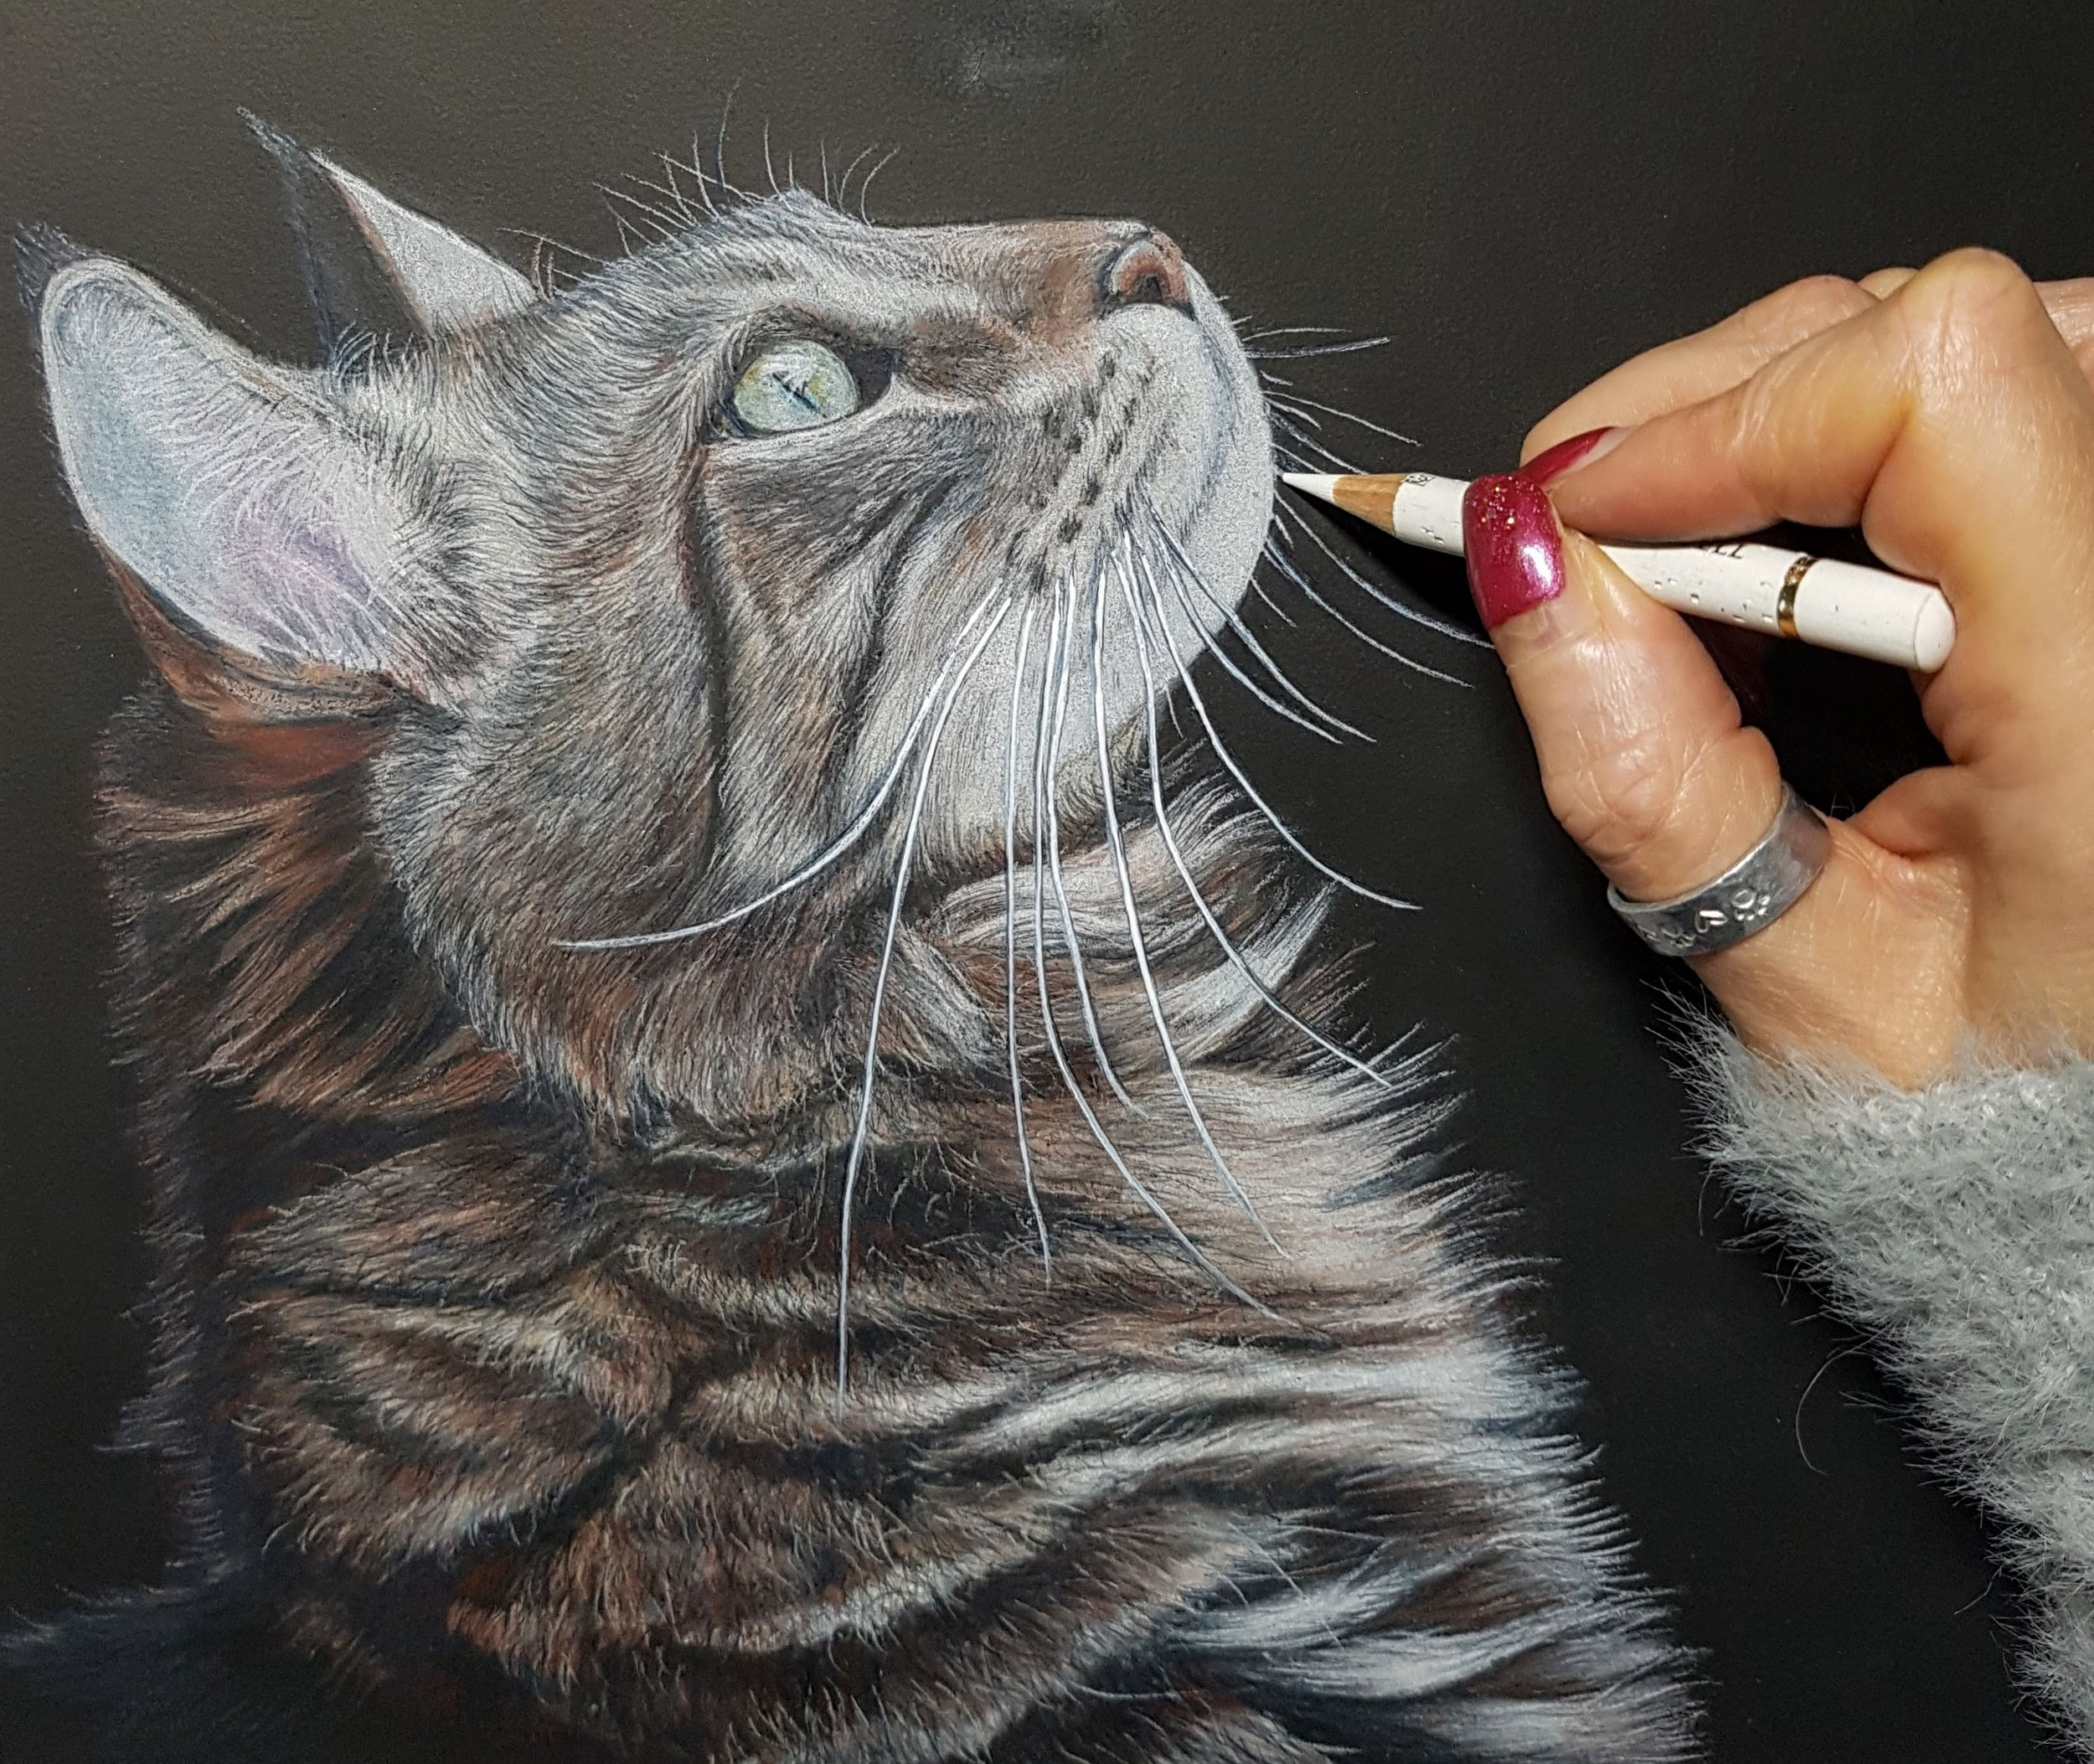 - Working with PanPastel & Coloured pencils on black paper